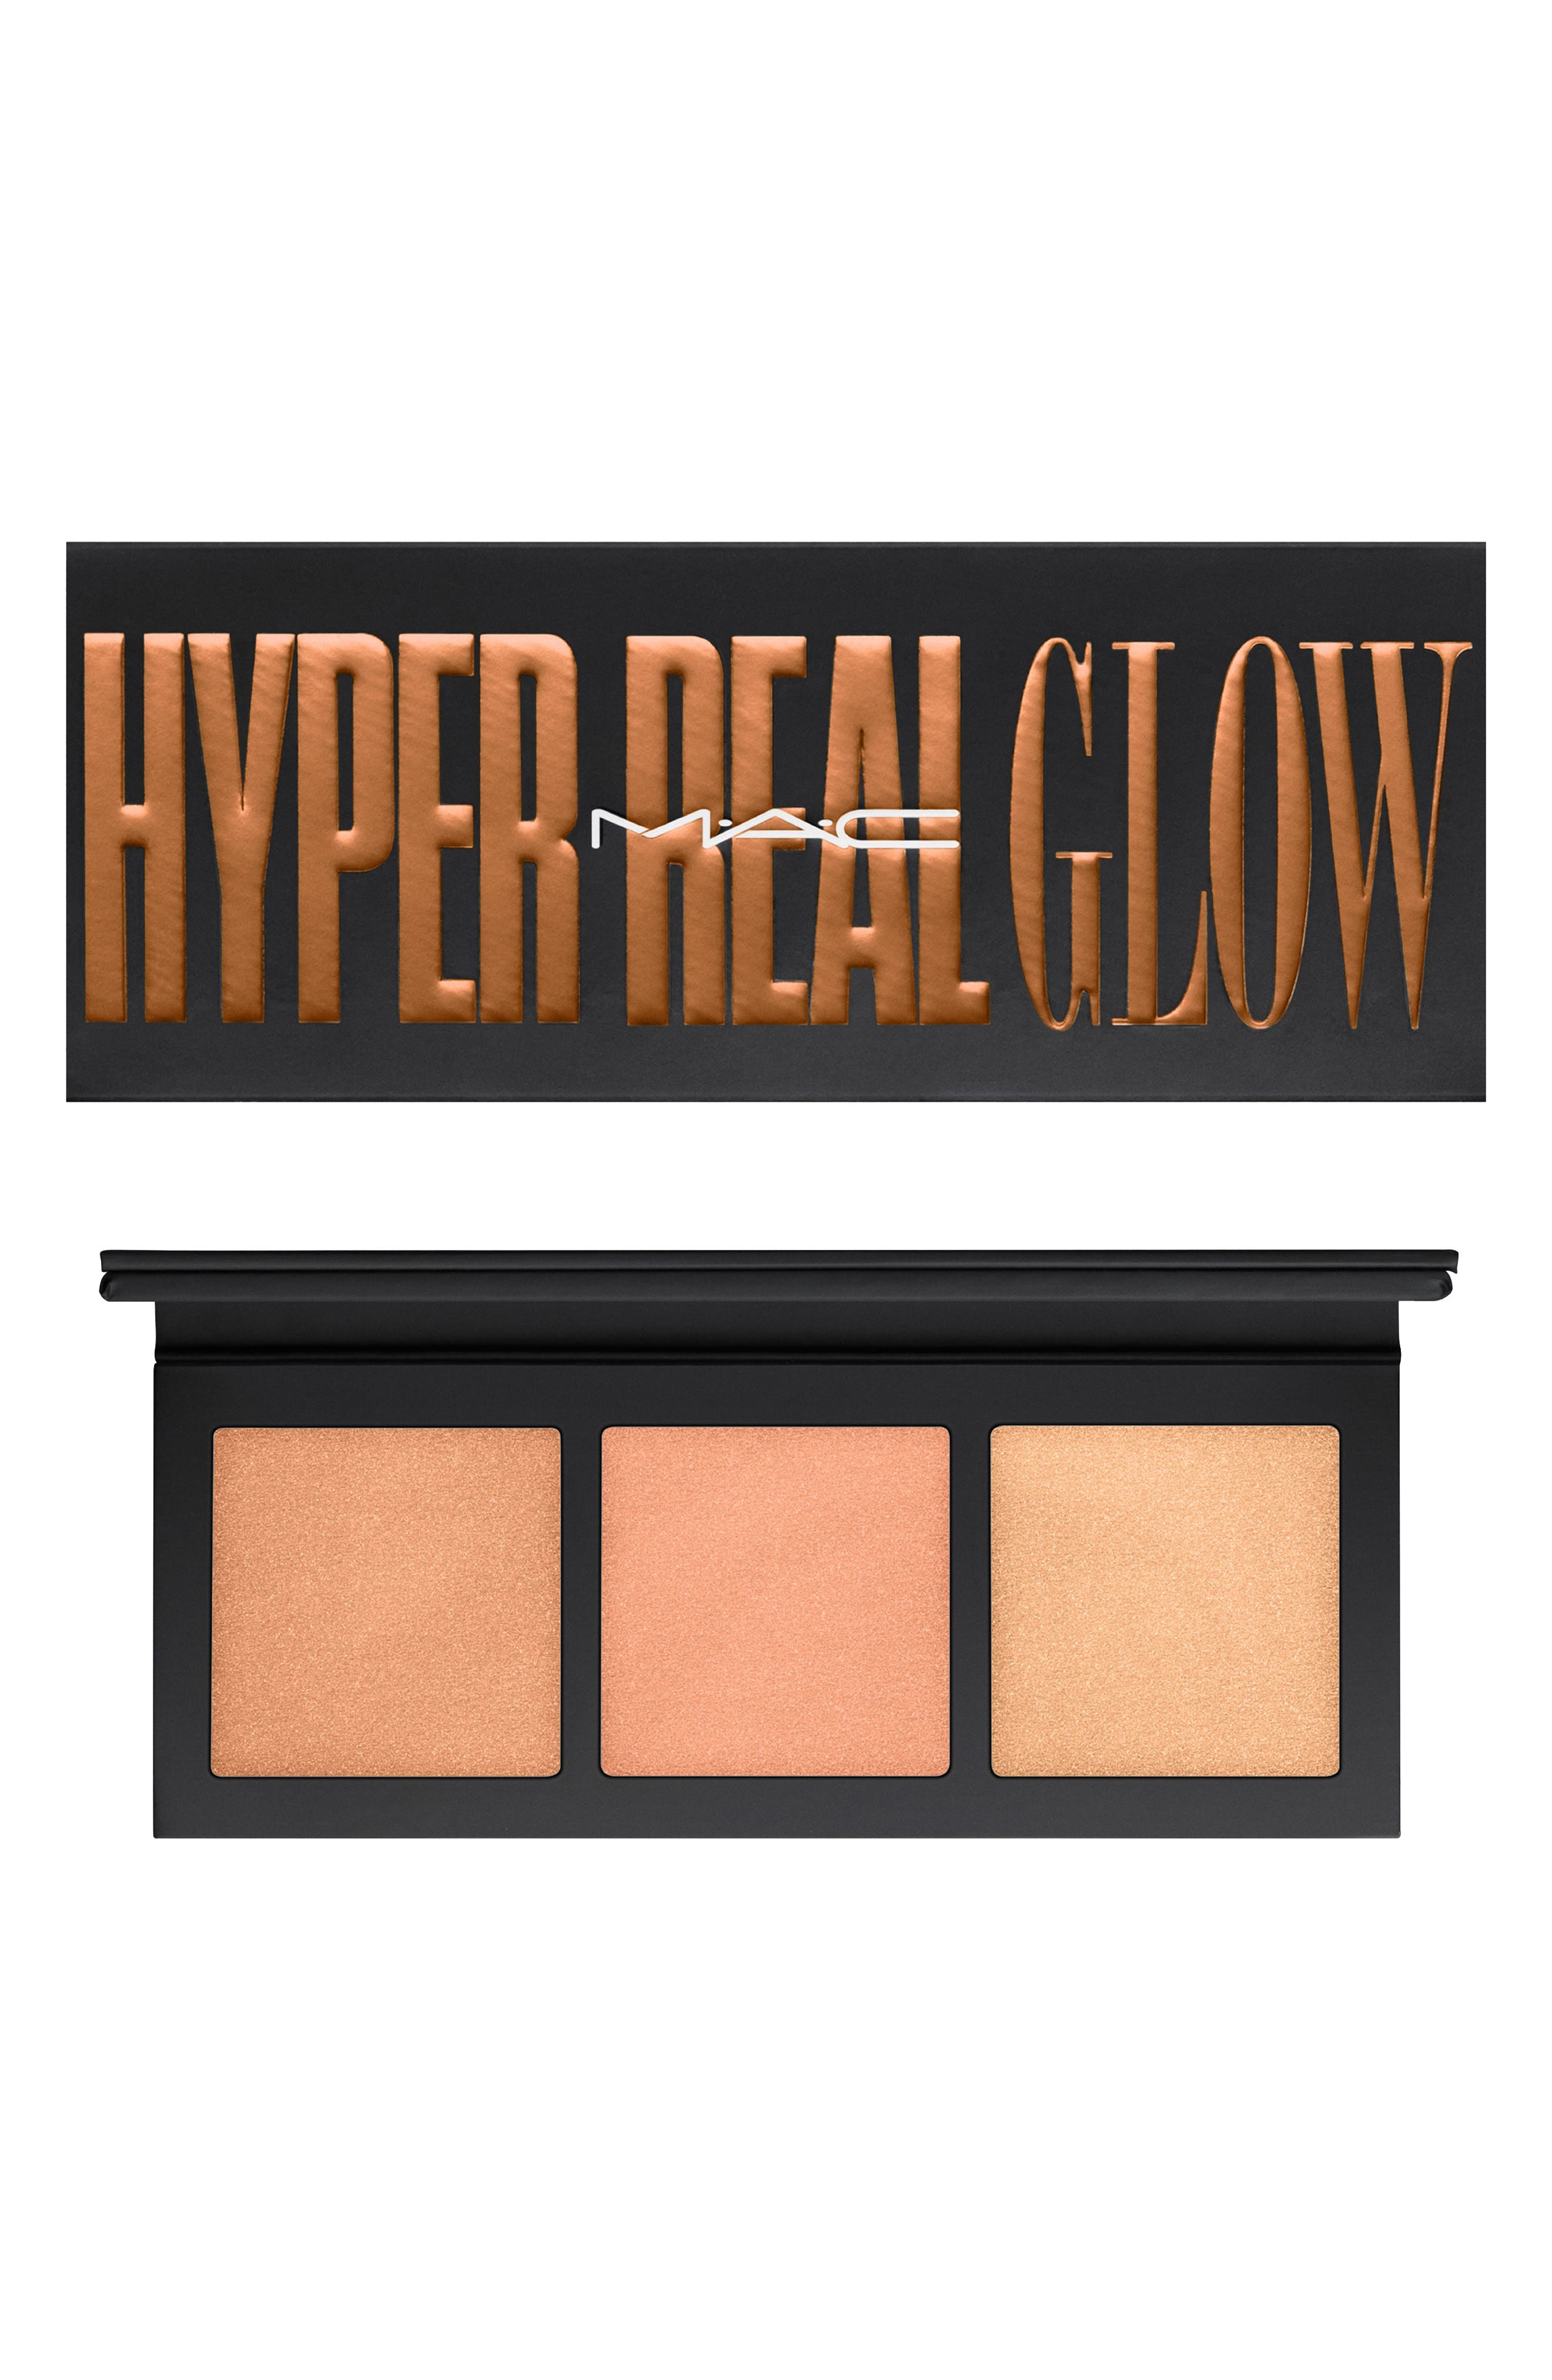 MAC Hyper Real Glow Palette,                             Main thumbnail 1, color,                             SHIMMY PEACH